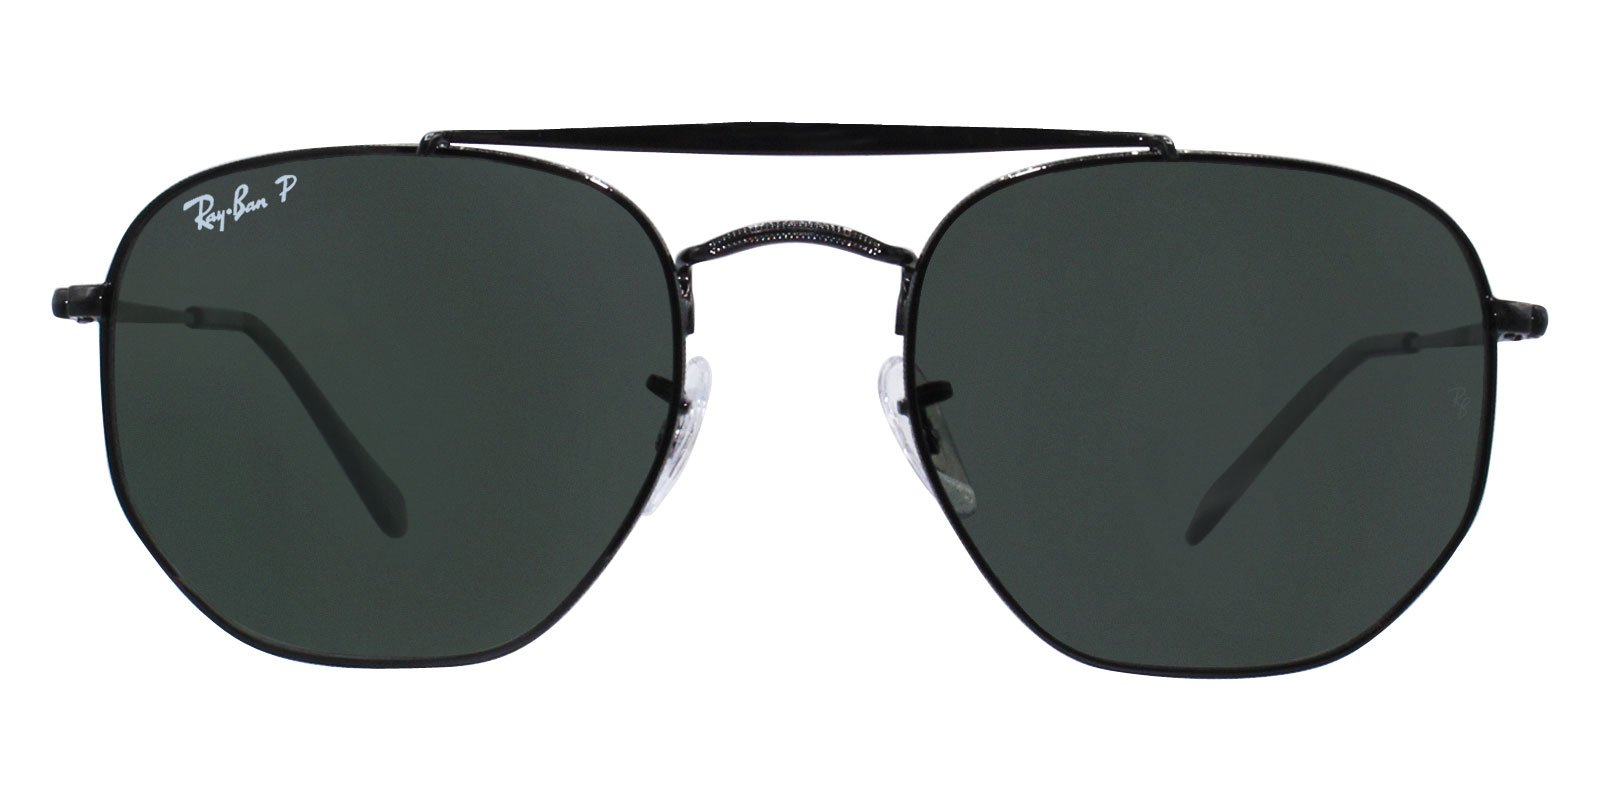 Ray Ban - RB3648 Black Oval Unisex Sunglasses - 54mm-Sunglasses-Designer Eyes